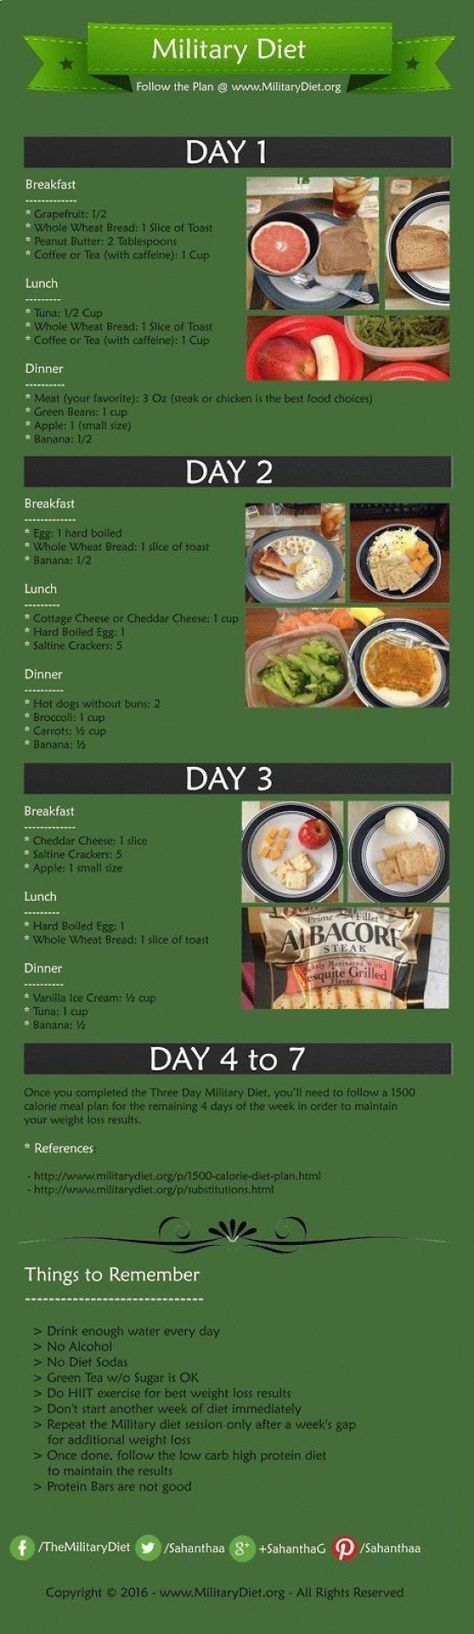 List Of Pinterest Diett Military 10 Pounds Losing Weight Pictures